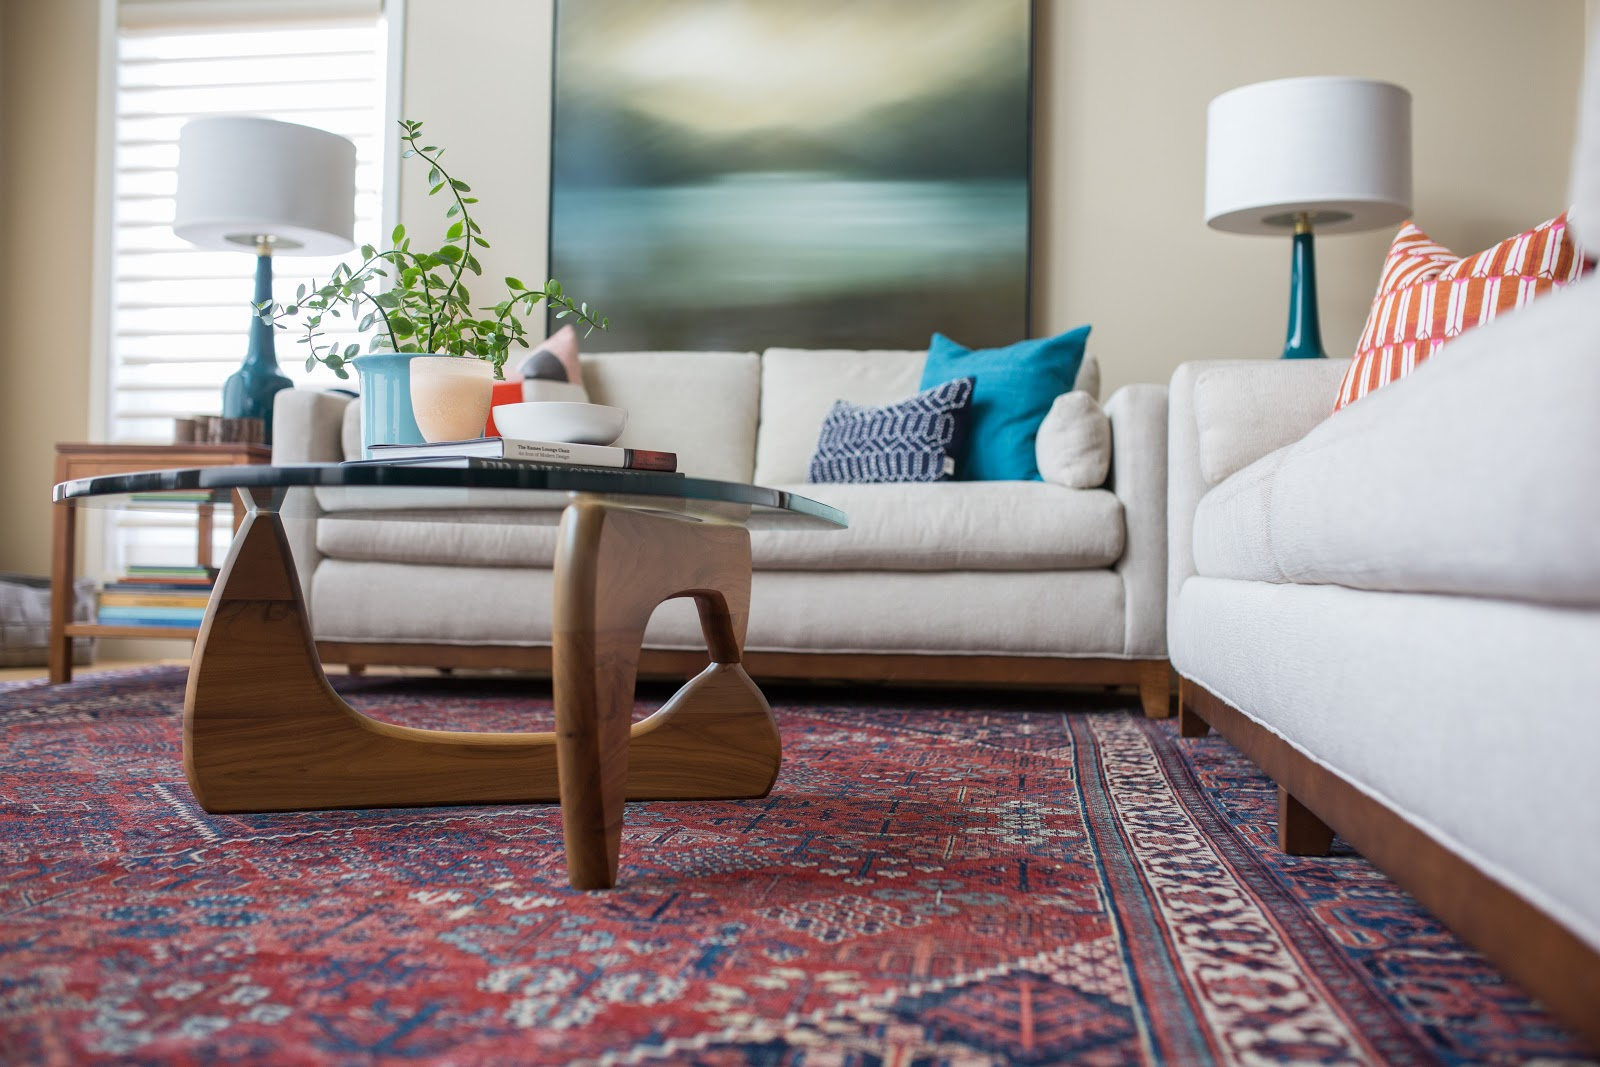 calgary interior design leanne bunnell red navy area rug living room grounds furniture